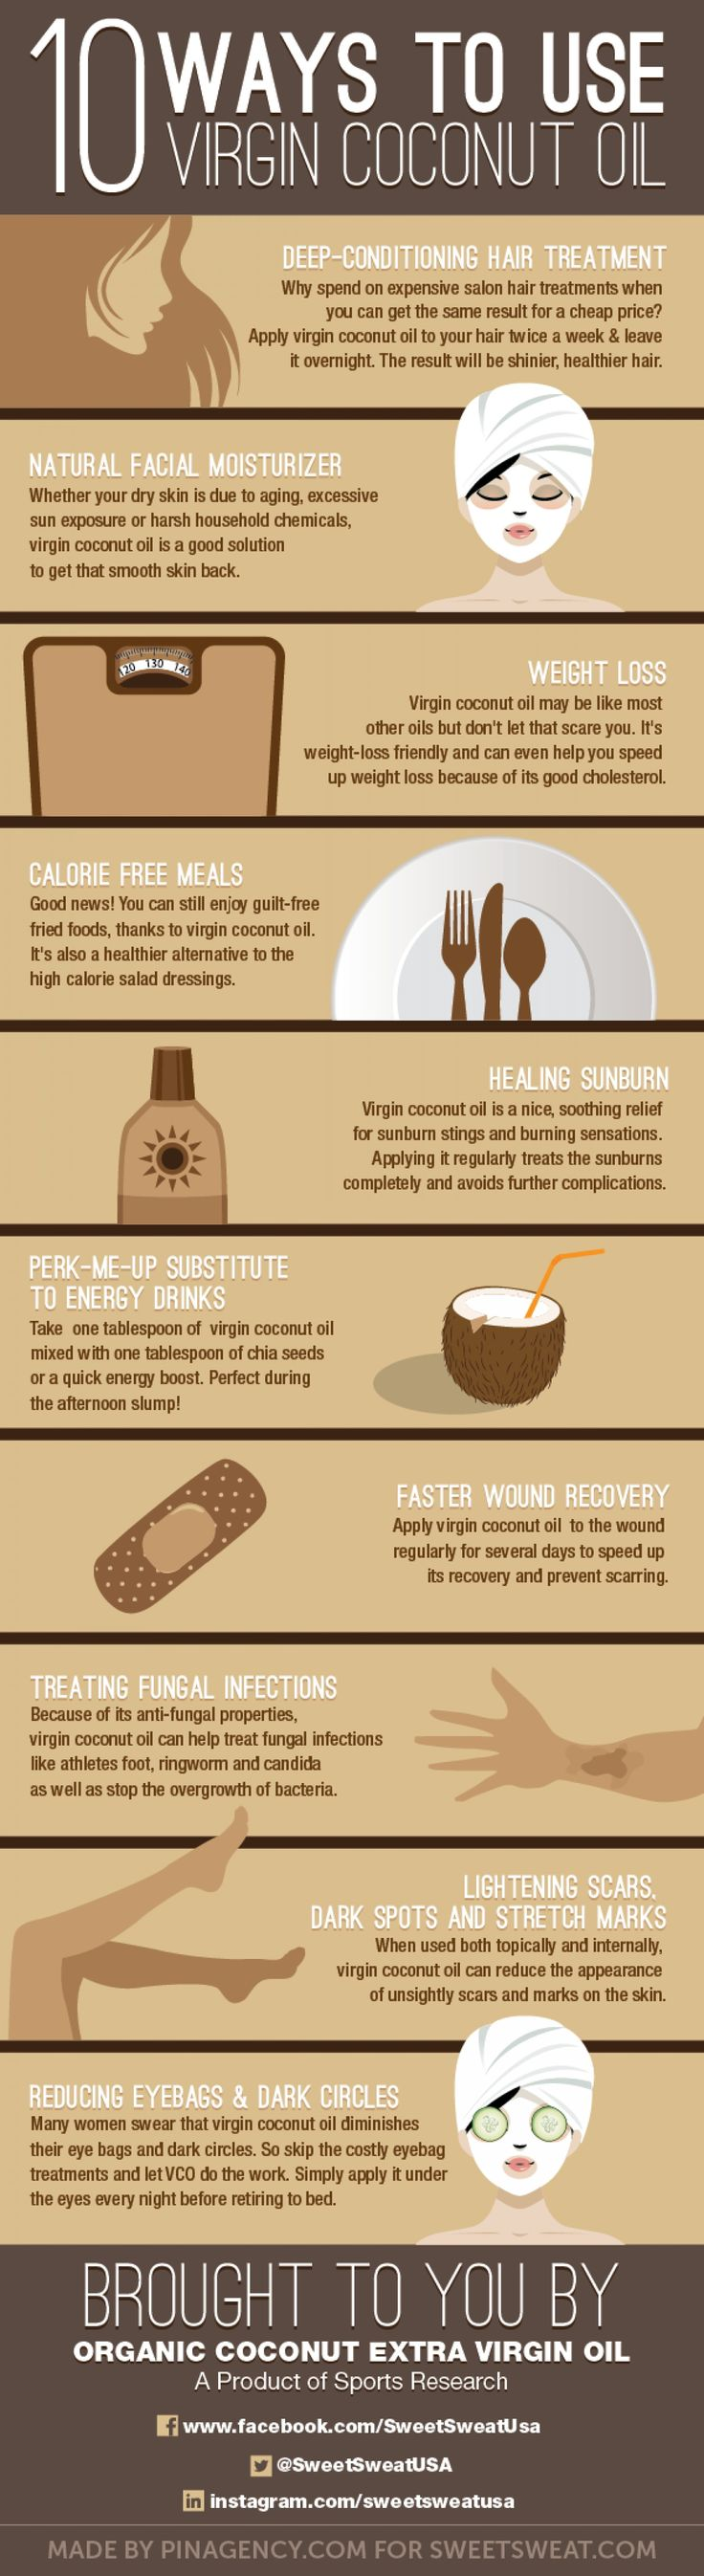 10 Amazing Uses For Coconut Oil (Infographic)  http://diyorganix.com/10-amazing-uses-for-coconut-oil-infographic/